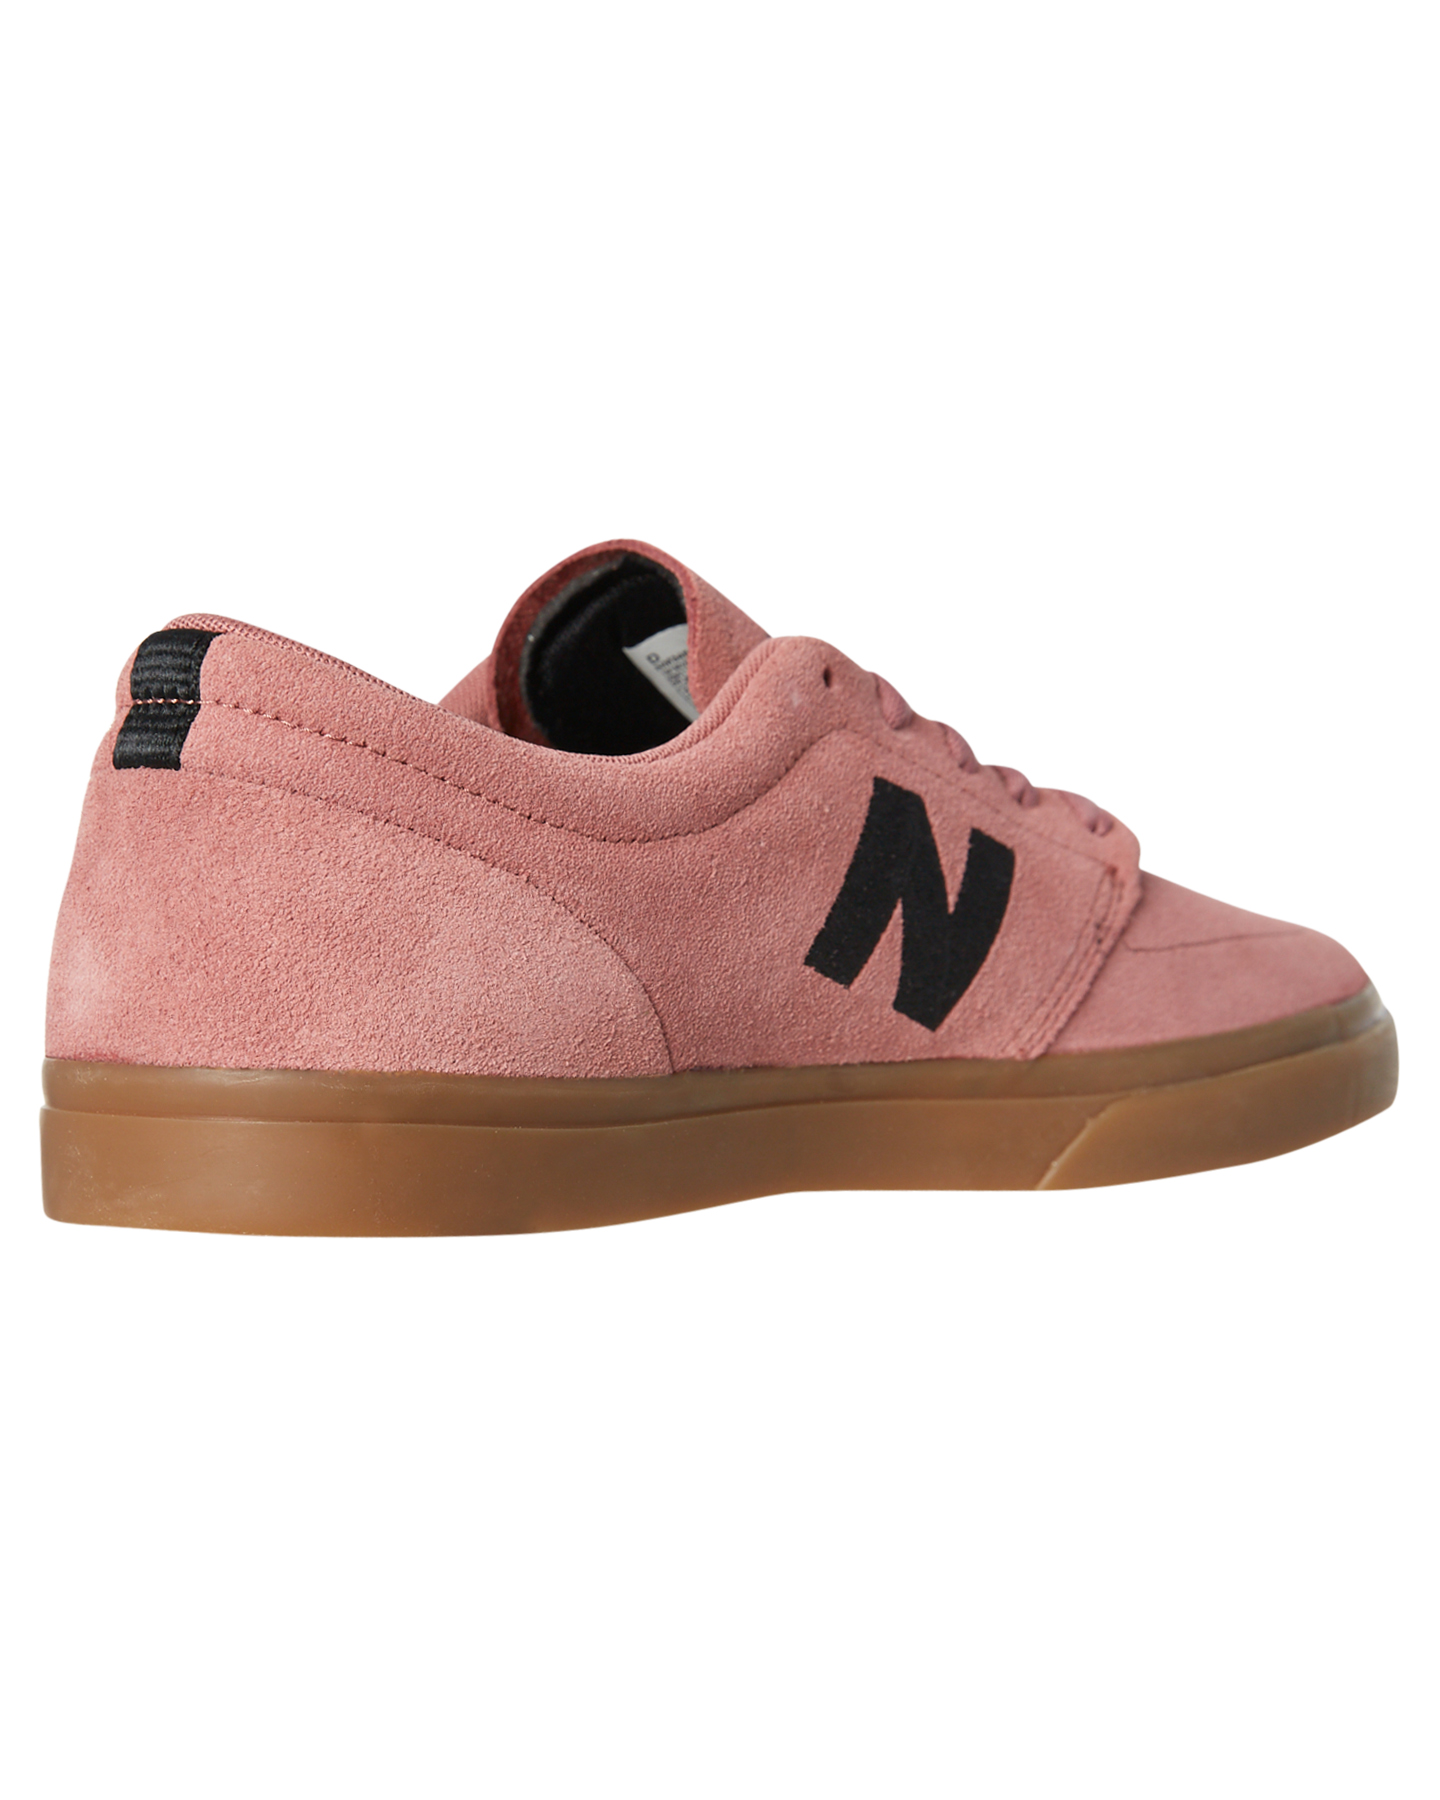 dcb7c6f969155 ... ROSE GUM MENS FOOTWEAR NEW BALANCE SKATE SHOES - NM345DPG ...